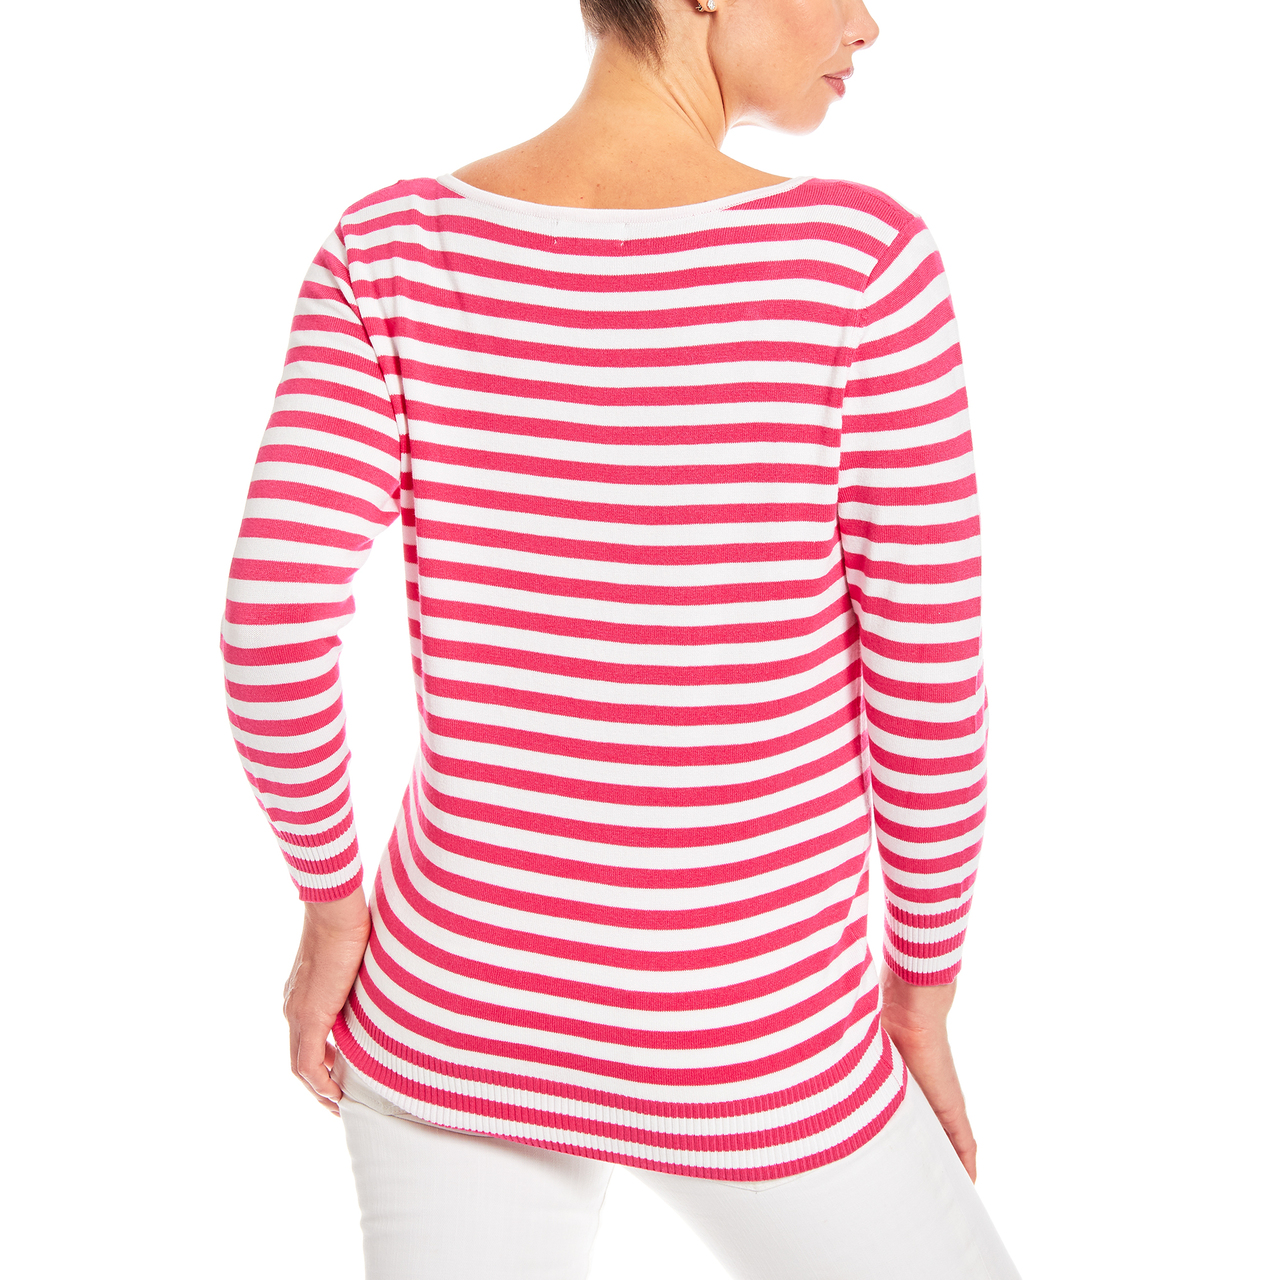 3/4 Sleeve Square Neck Stripe Sweater in Hot Pink and White